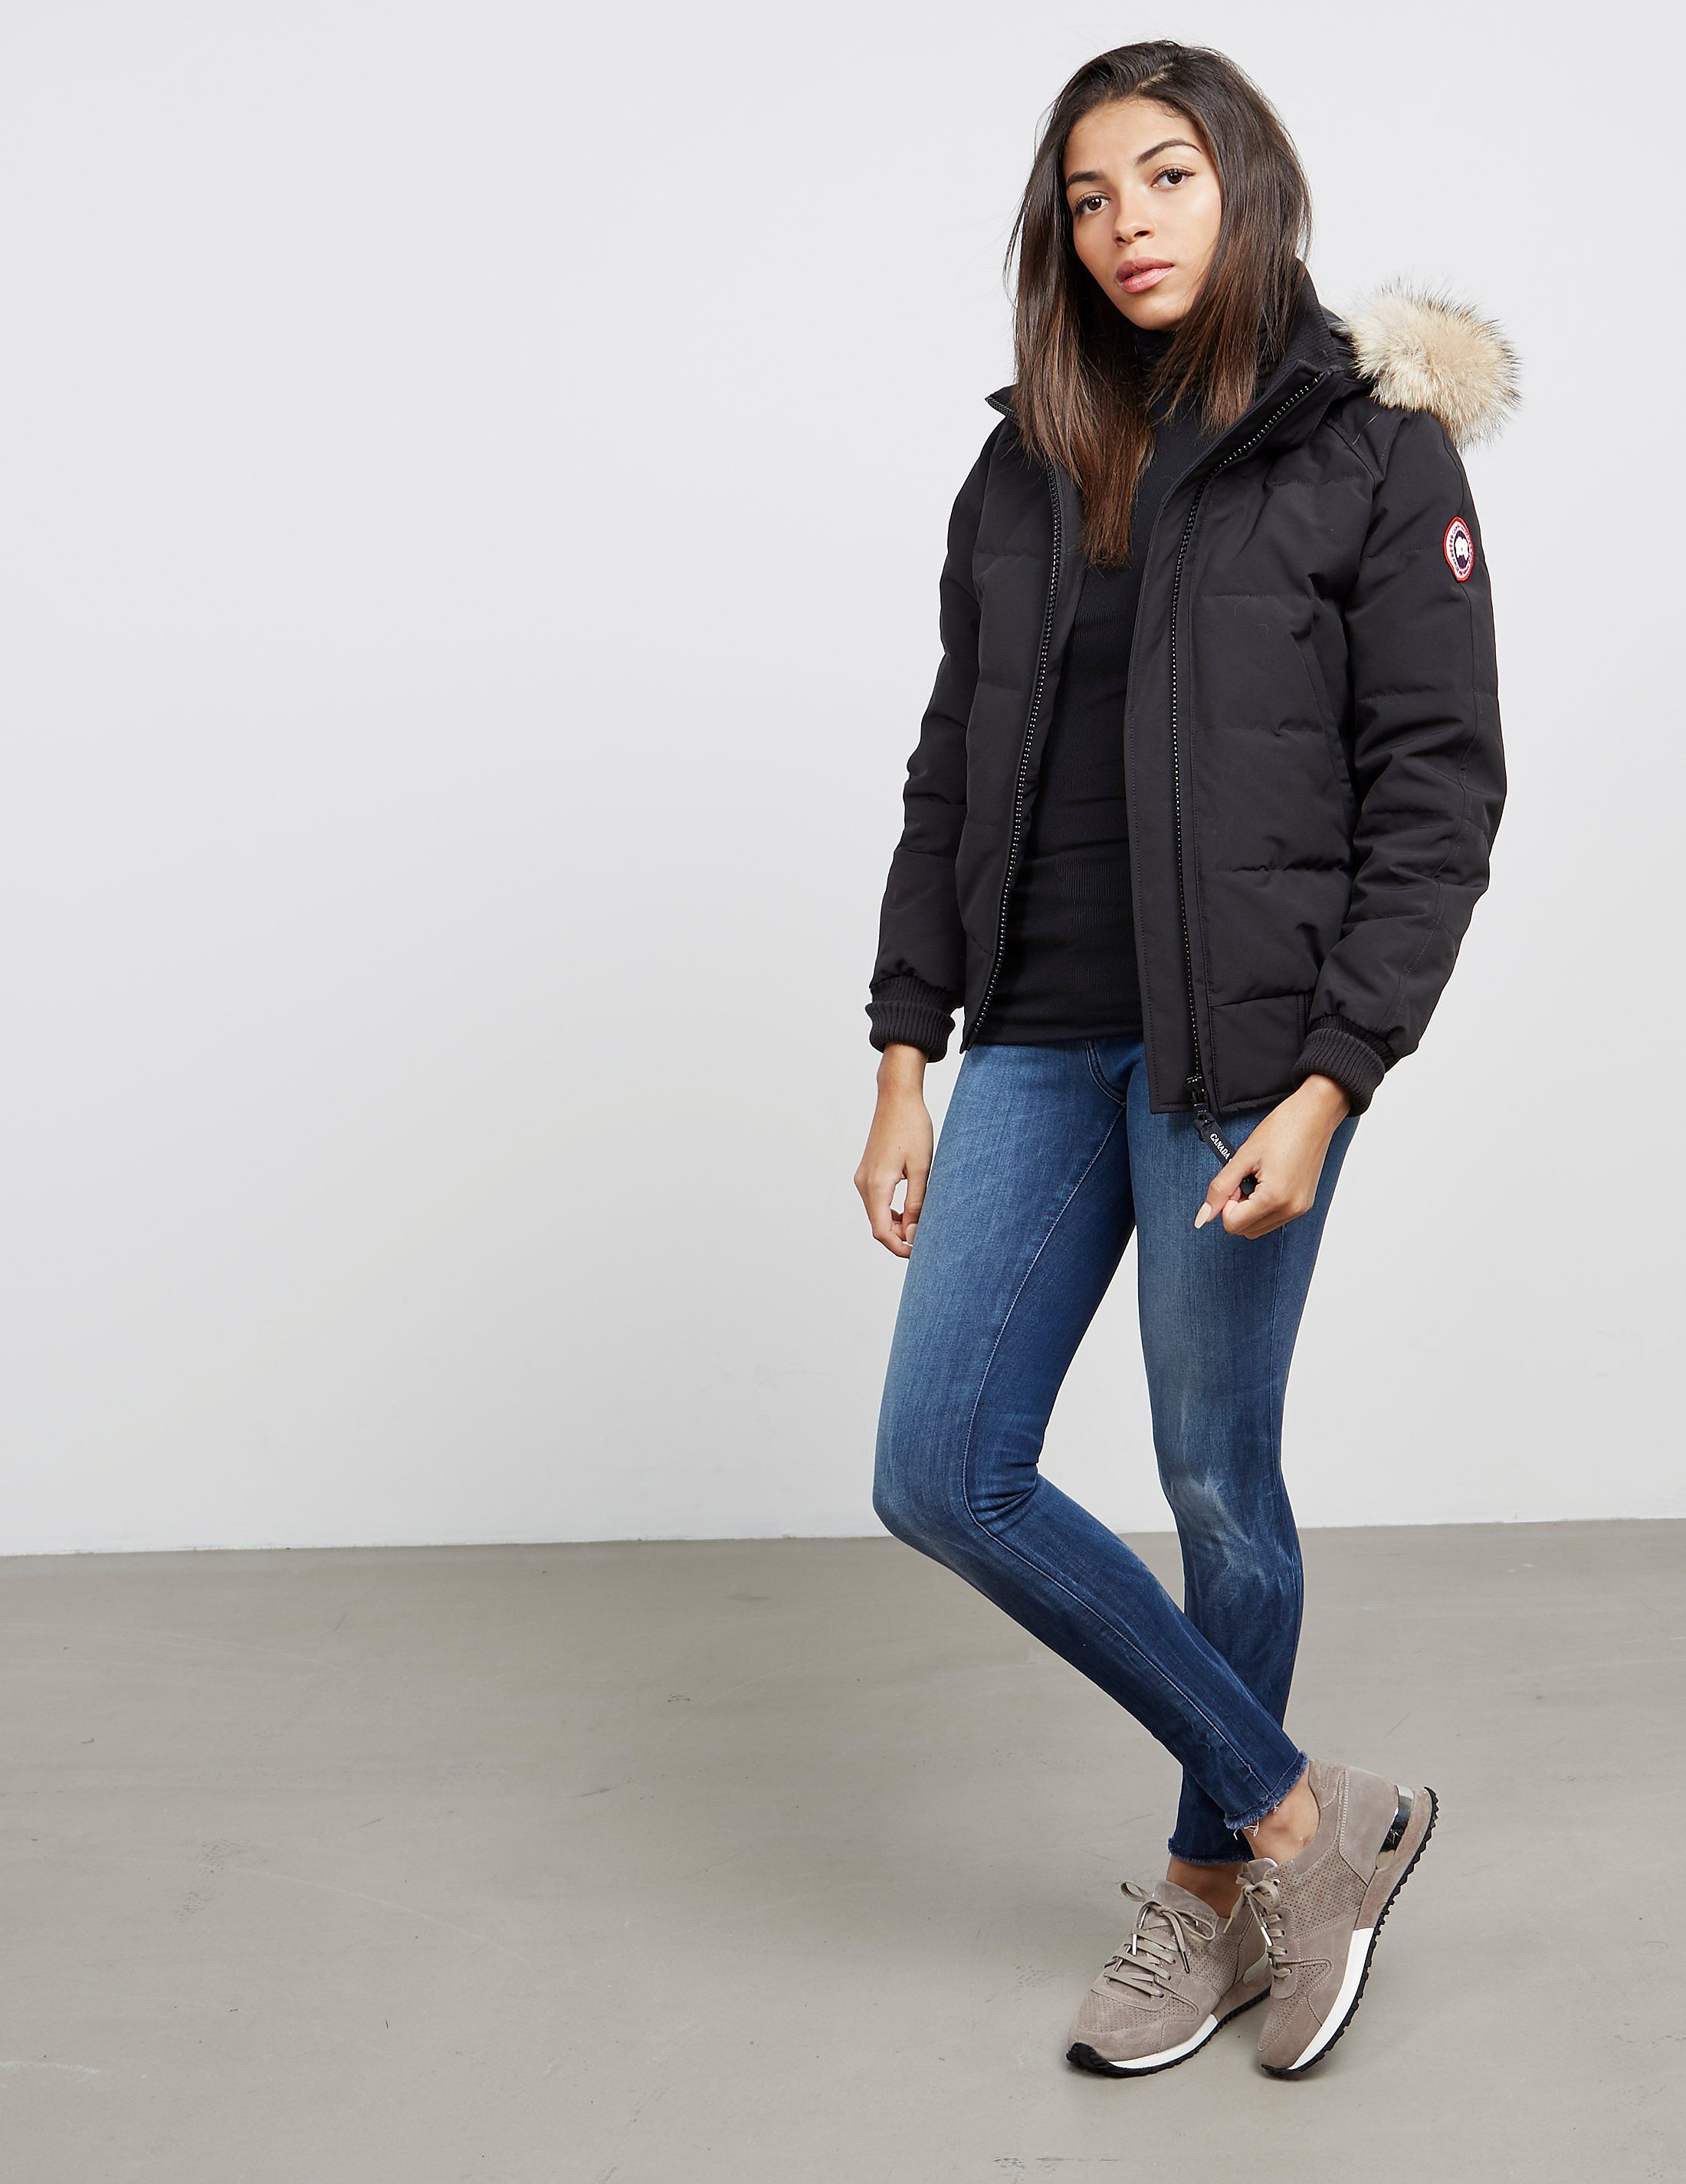 093737254 Canada Goose Savona Padded Bomber Jacket - available at Tessuti